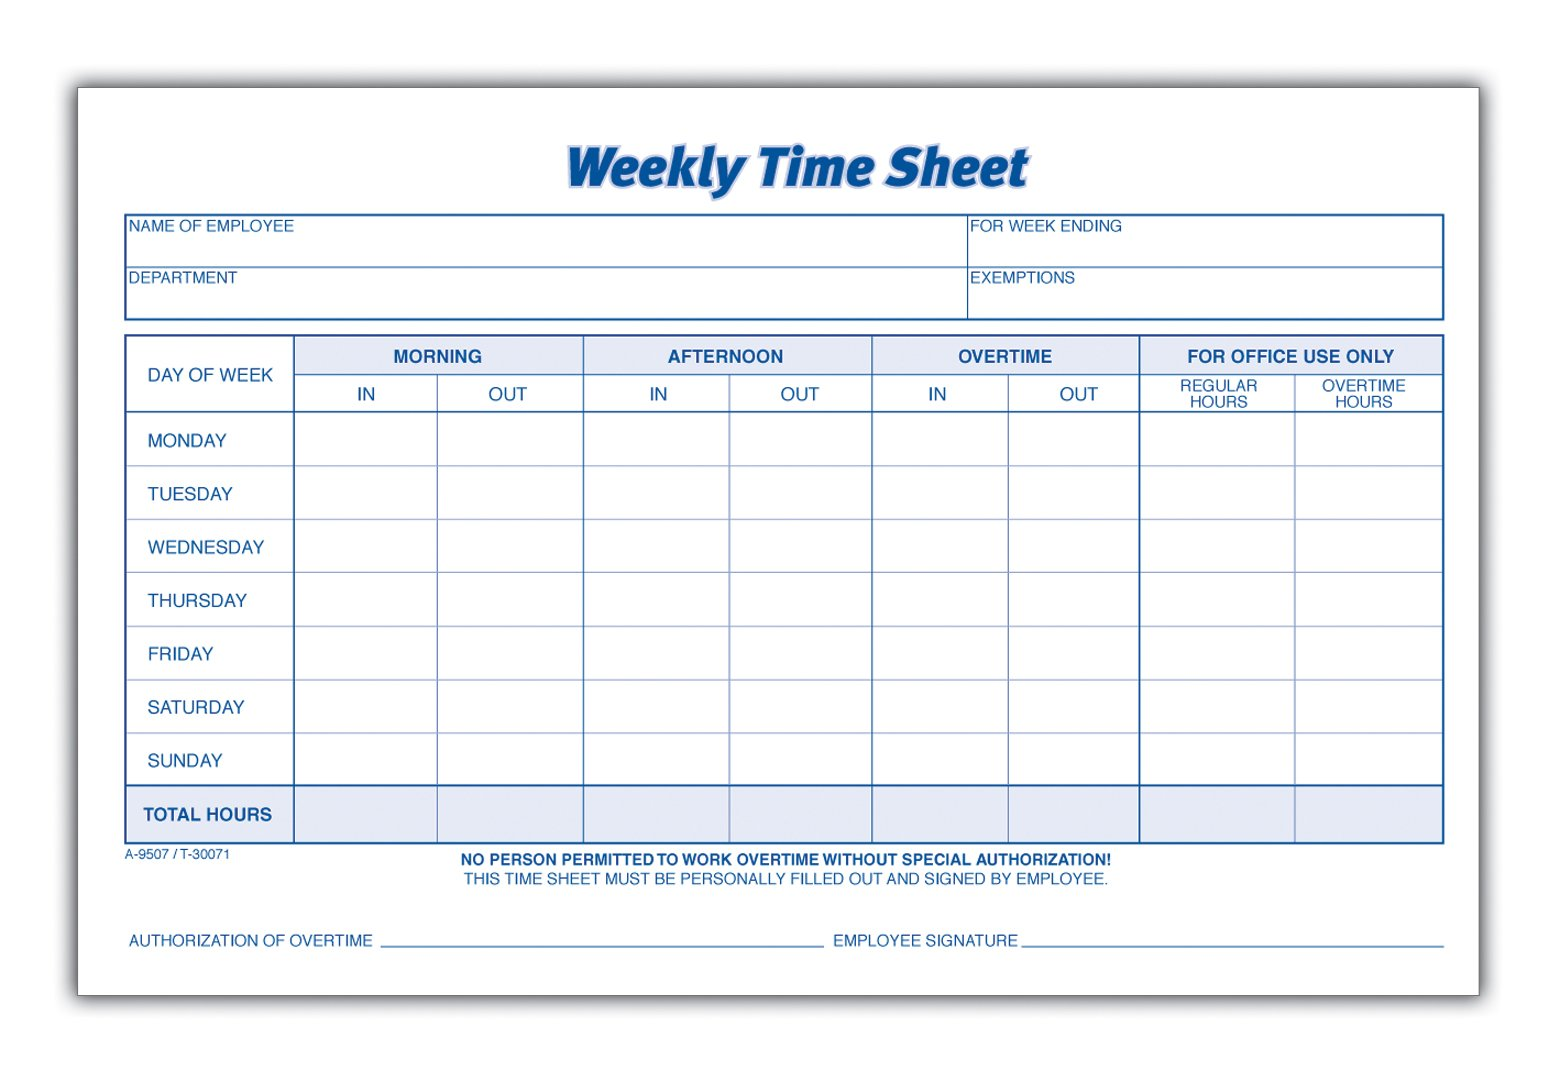 Weekly Time Sheet Pictures to pin on Pinterest